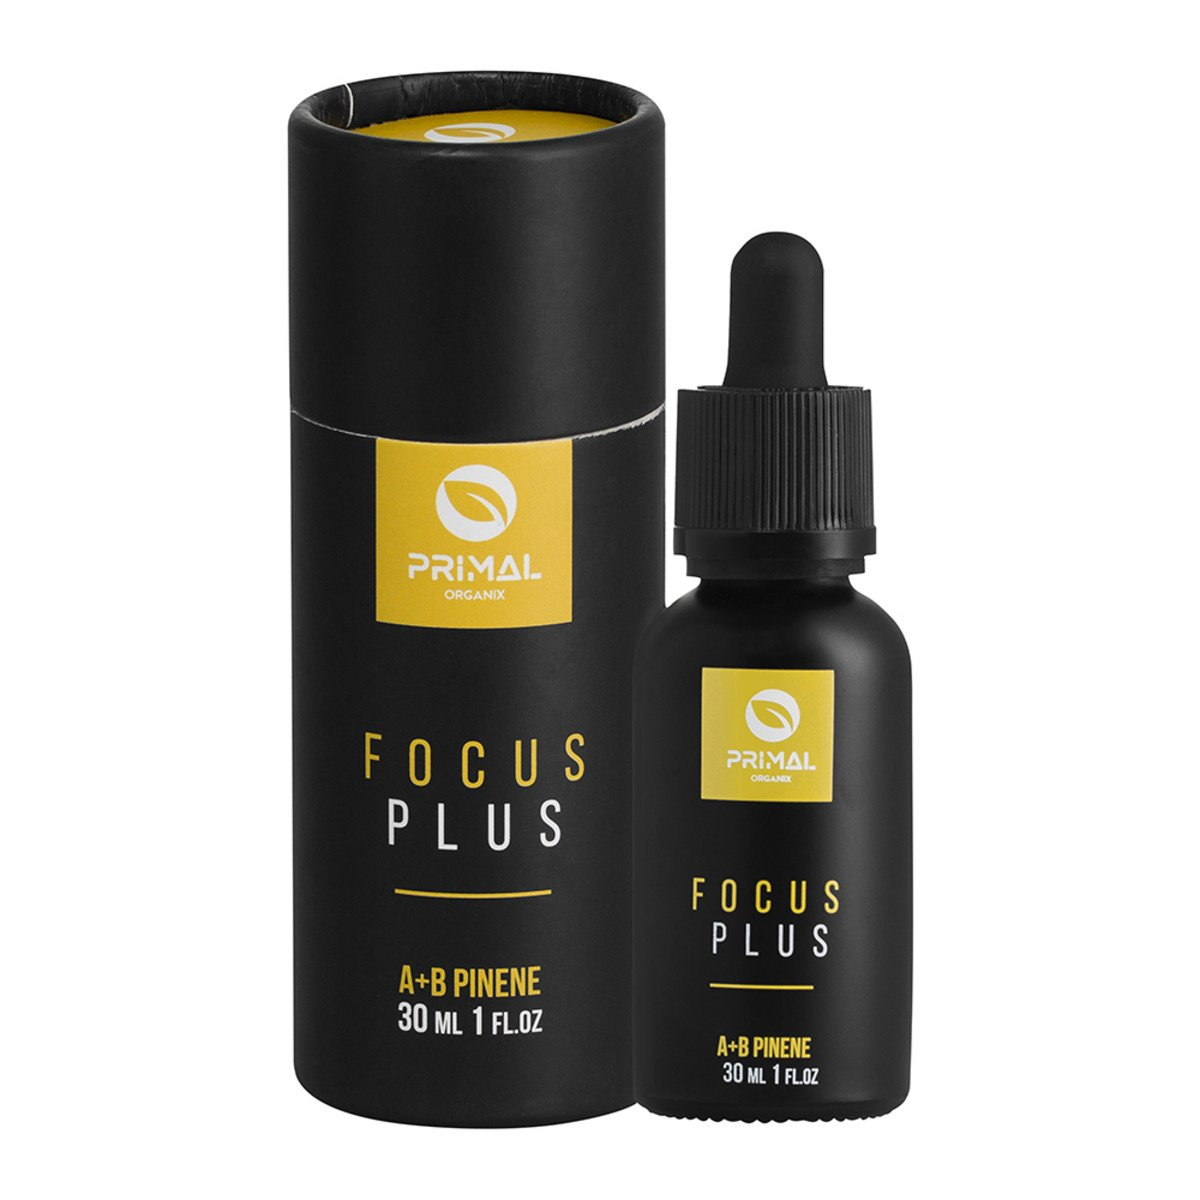 Primal_Organix_Focus_Plus_30ml_media-01_